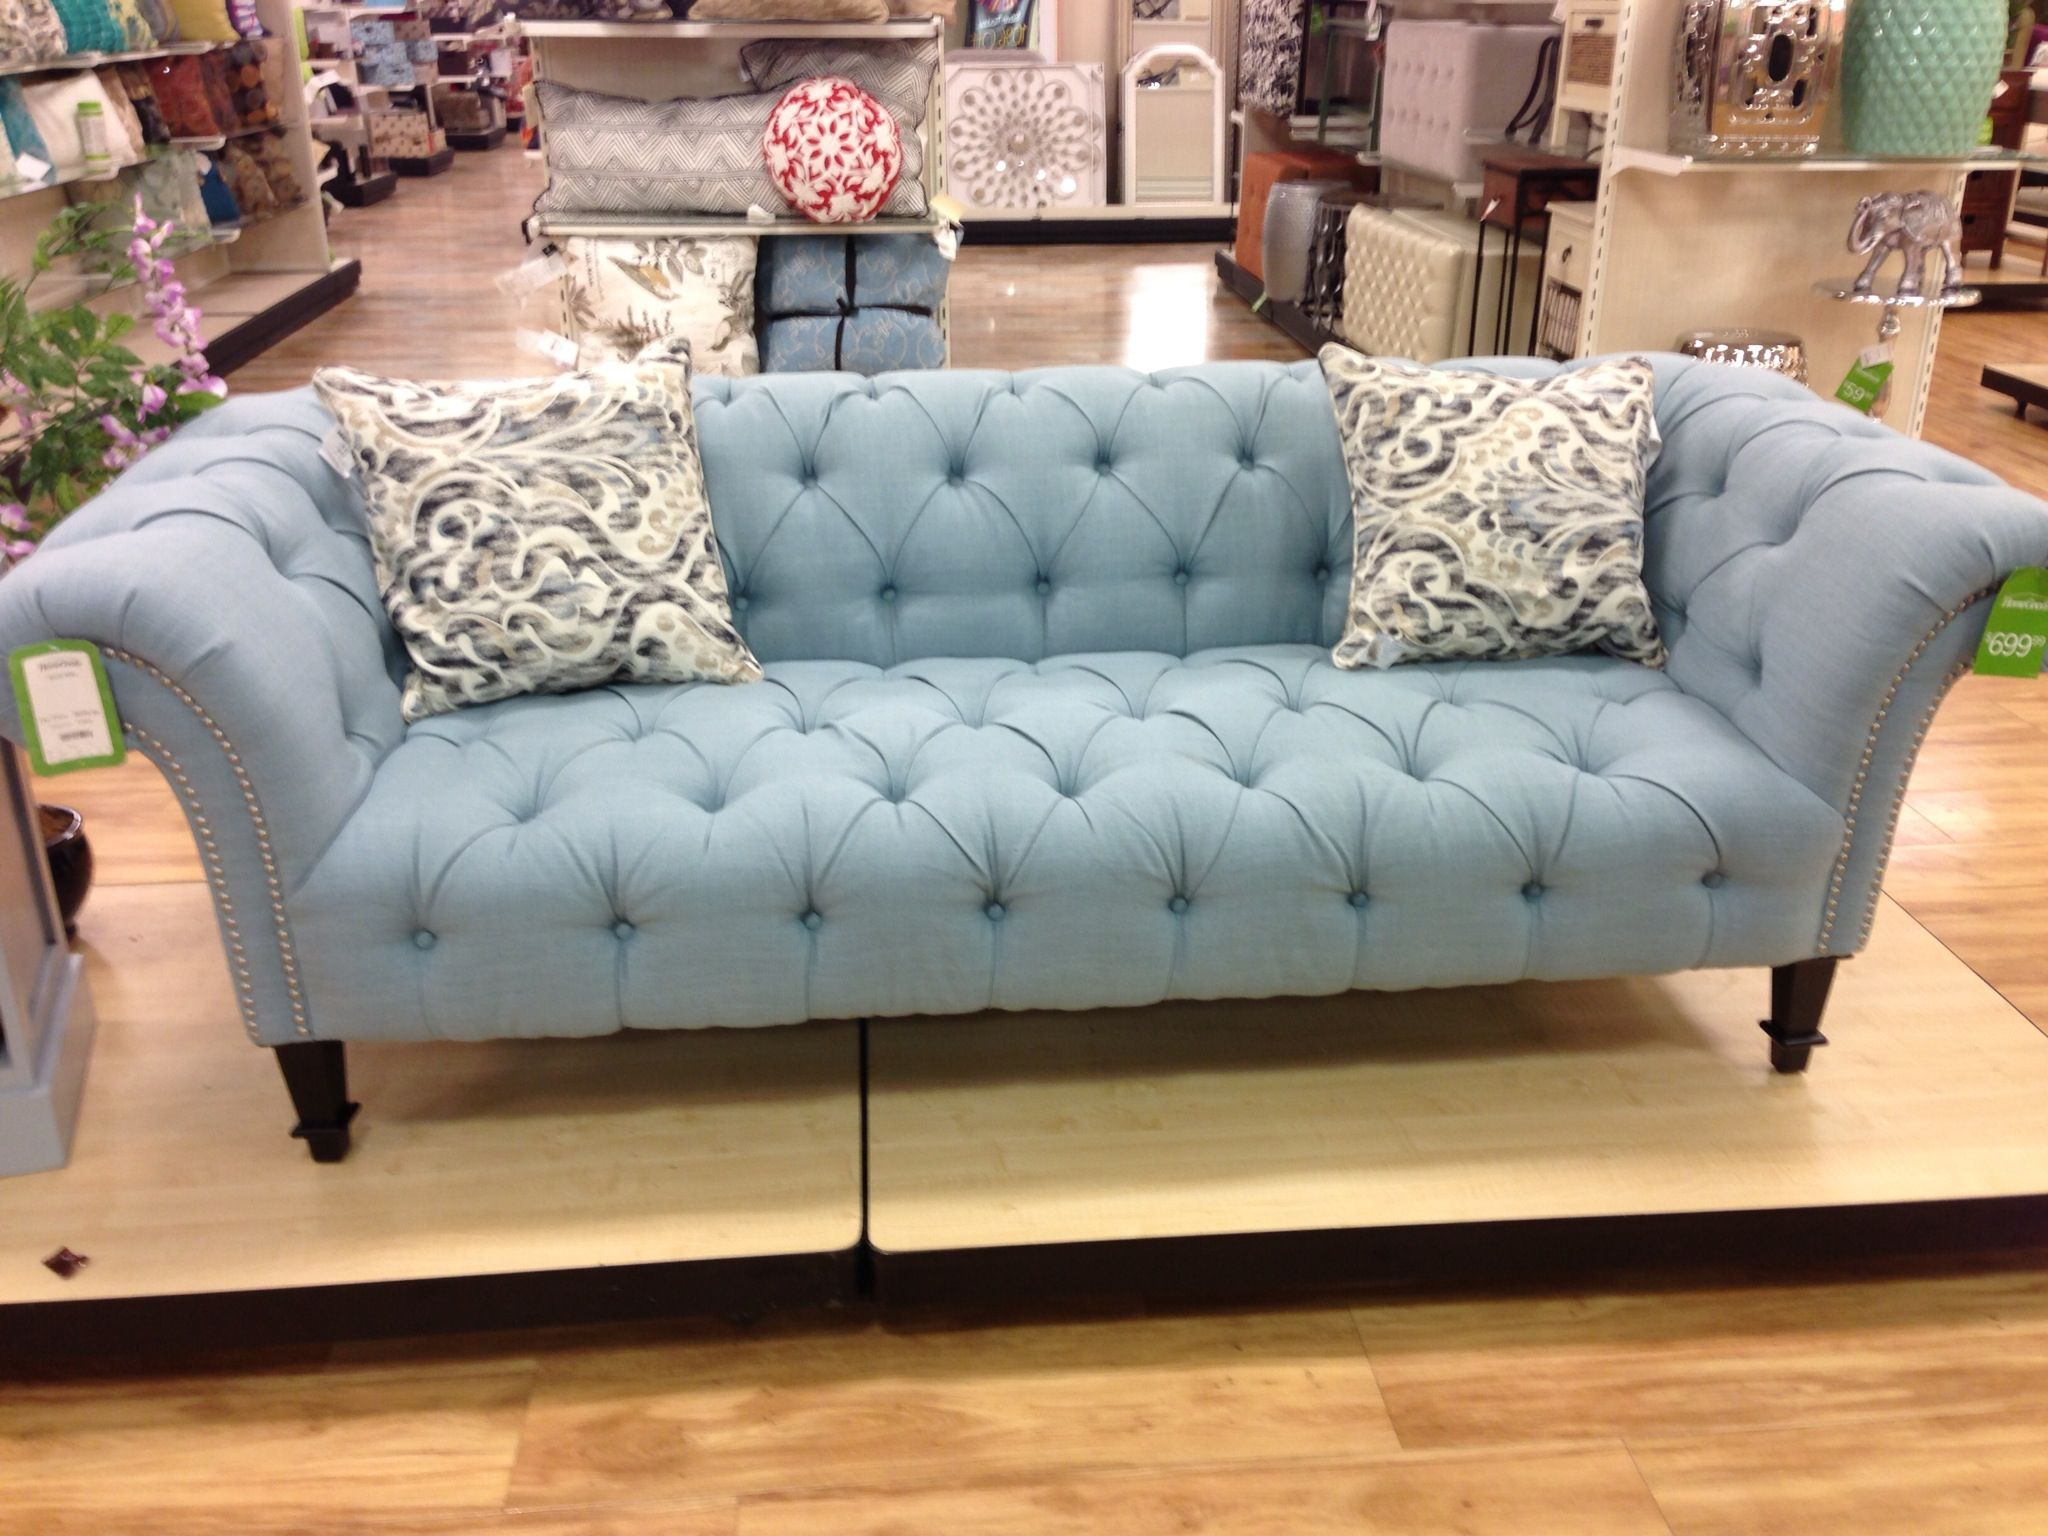 Pier One Imports Sofas Pier One Couches Sofa In Gray Thesofa